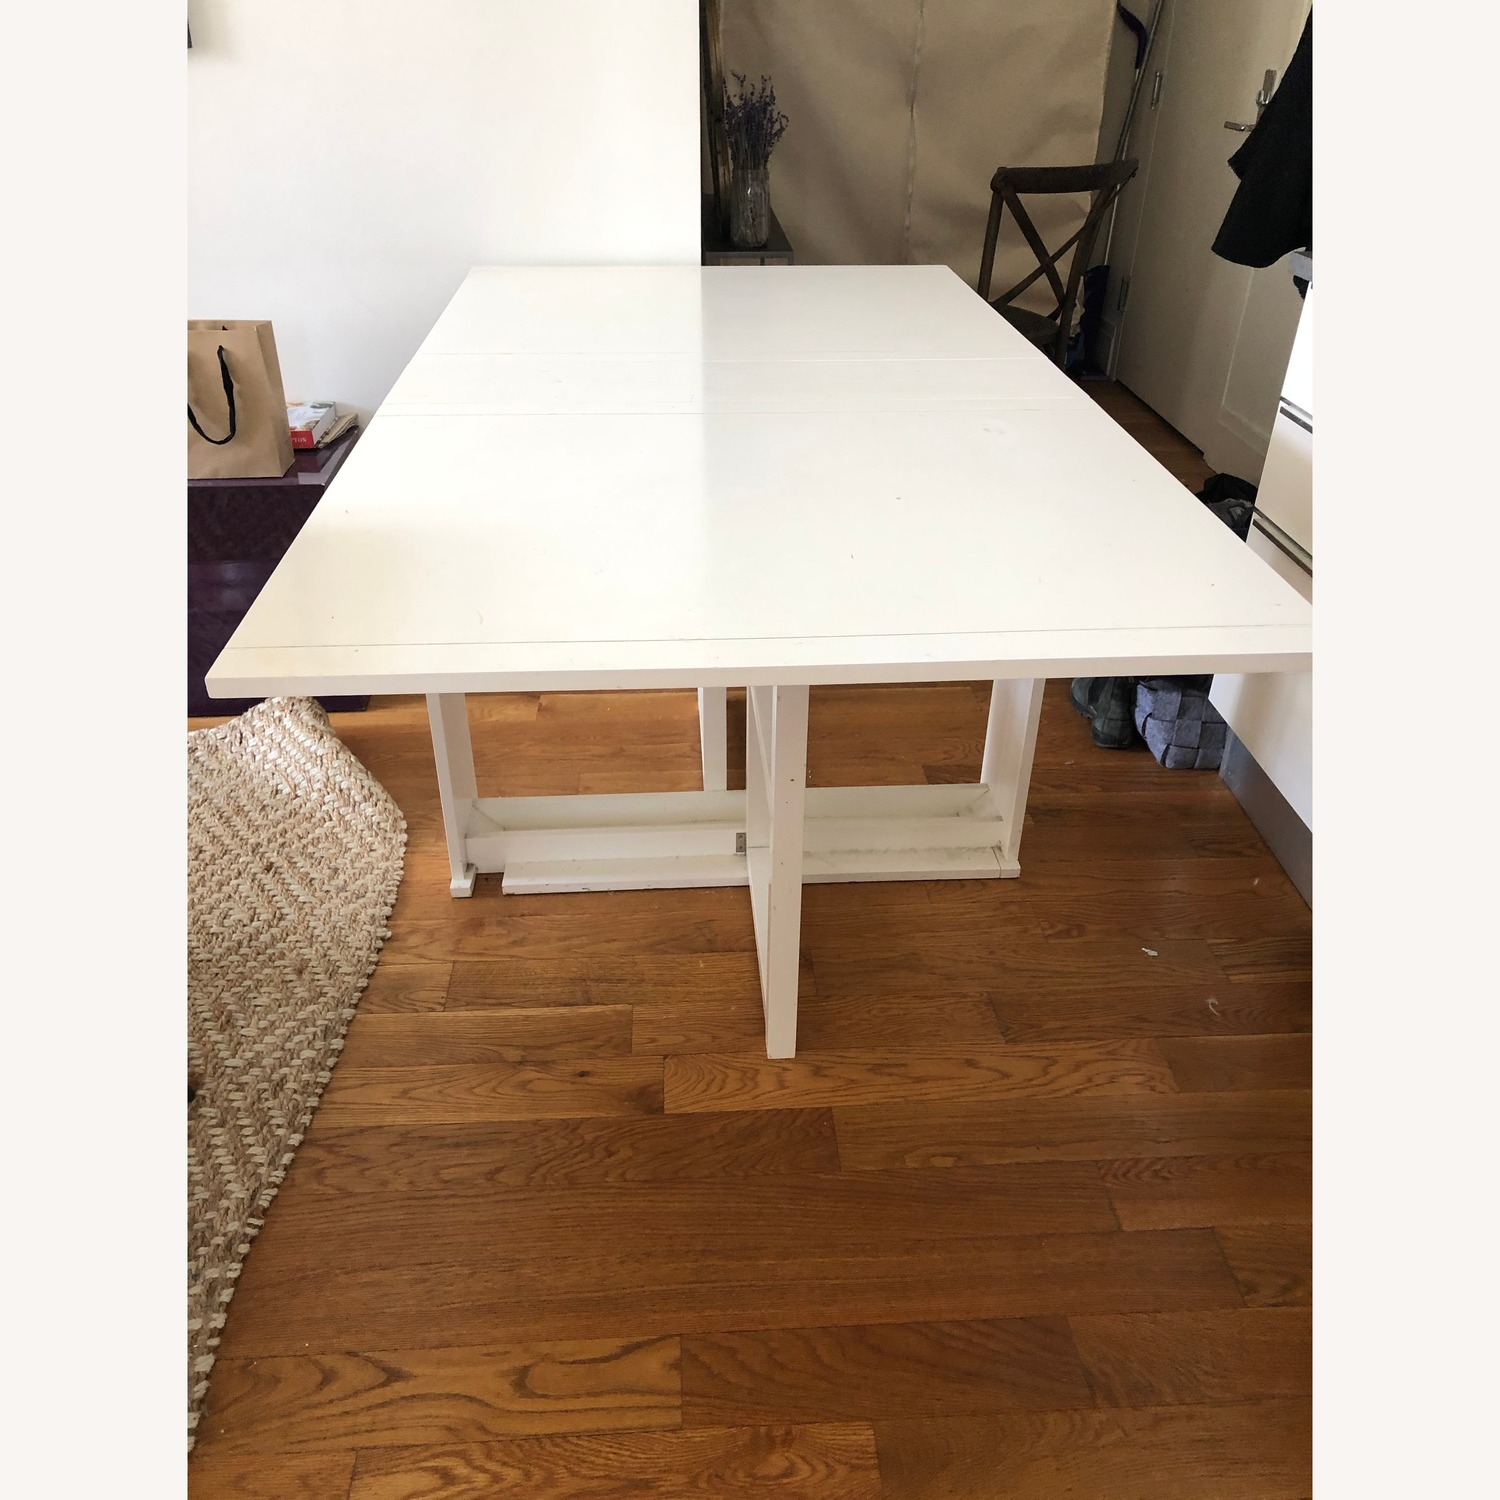 Crate & Barrel Foldable Dining Table - image-1